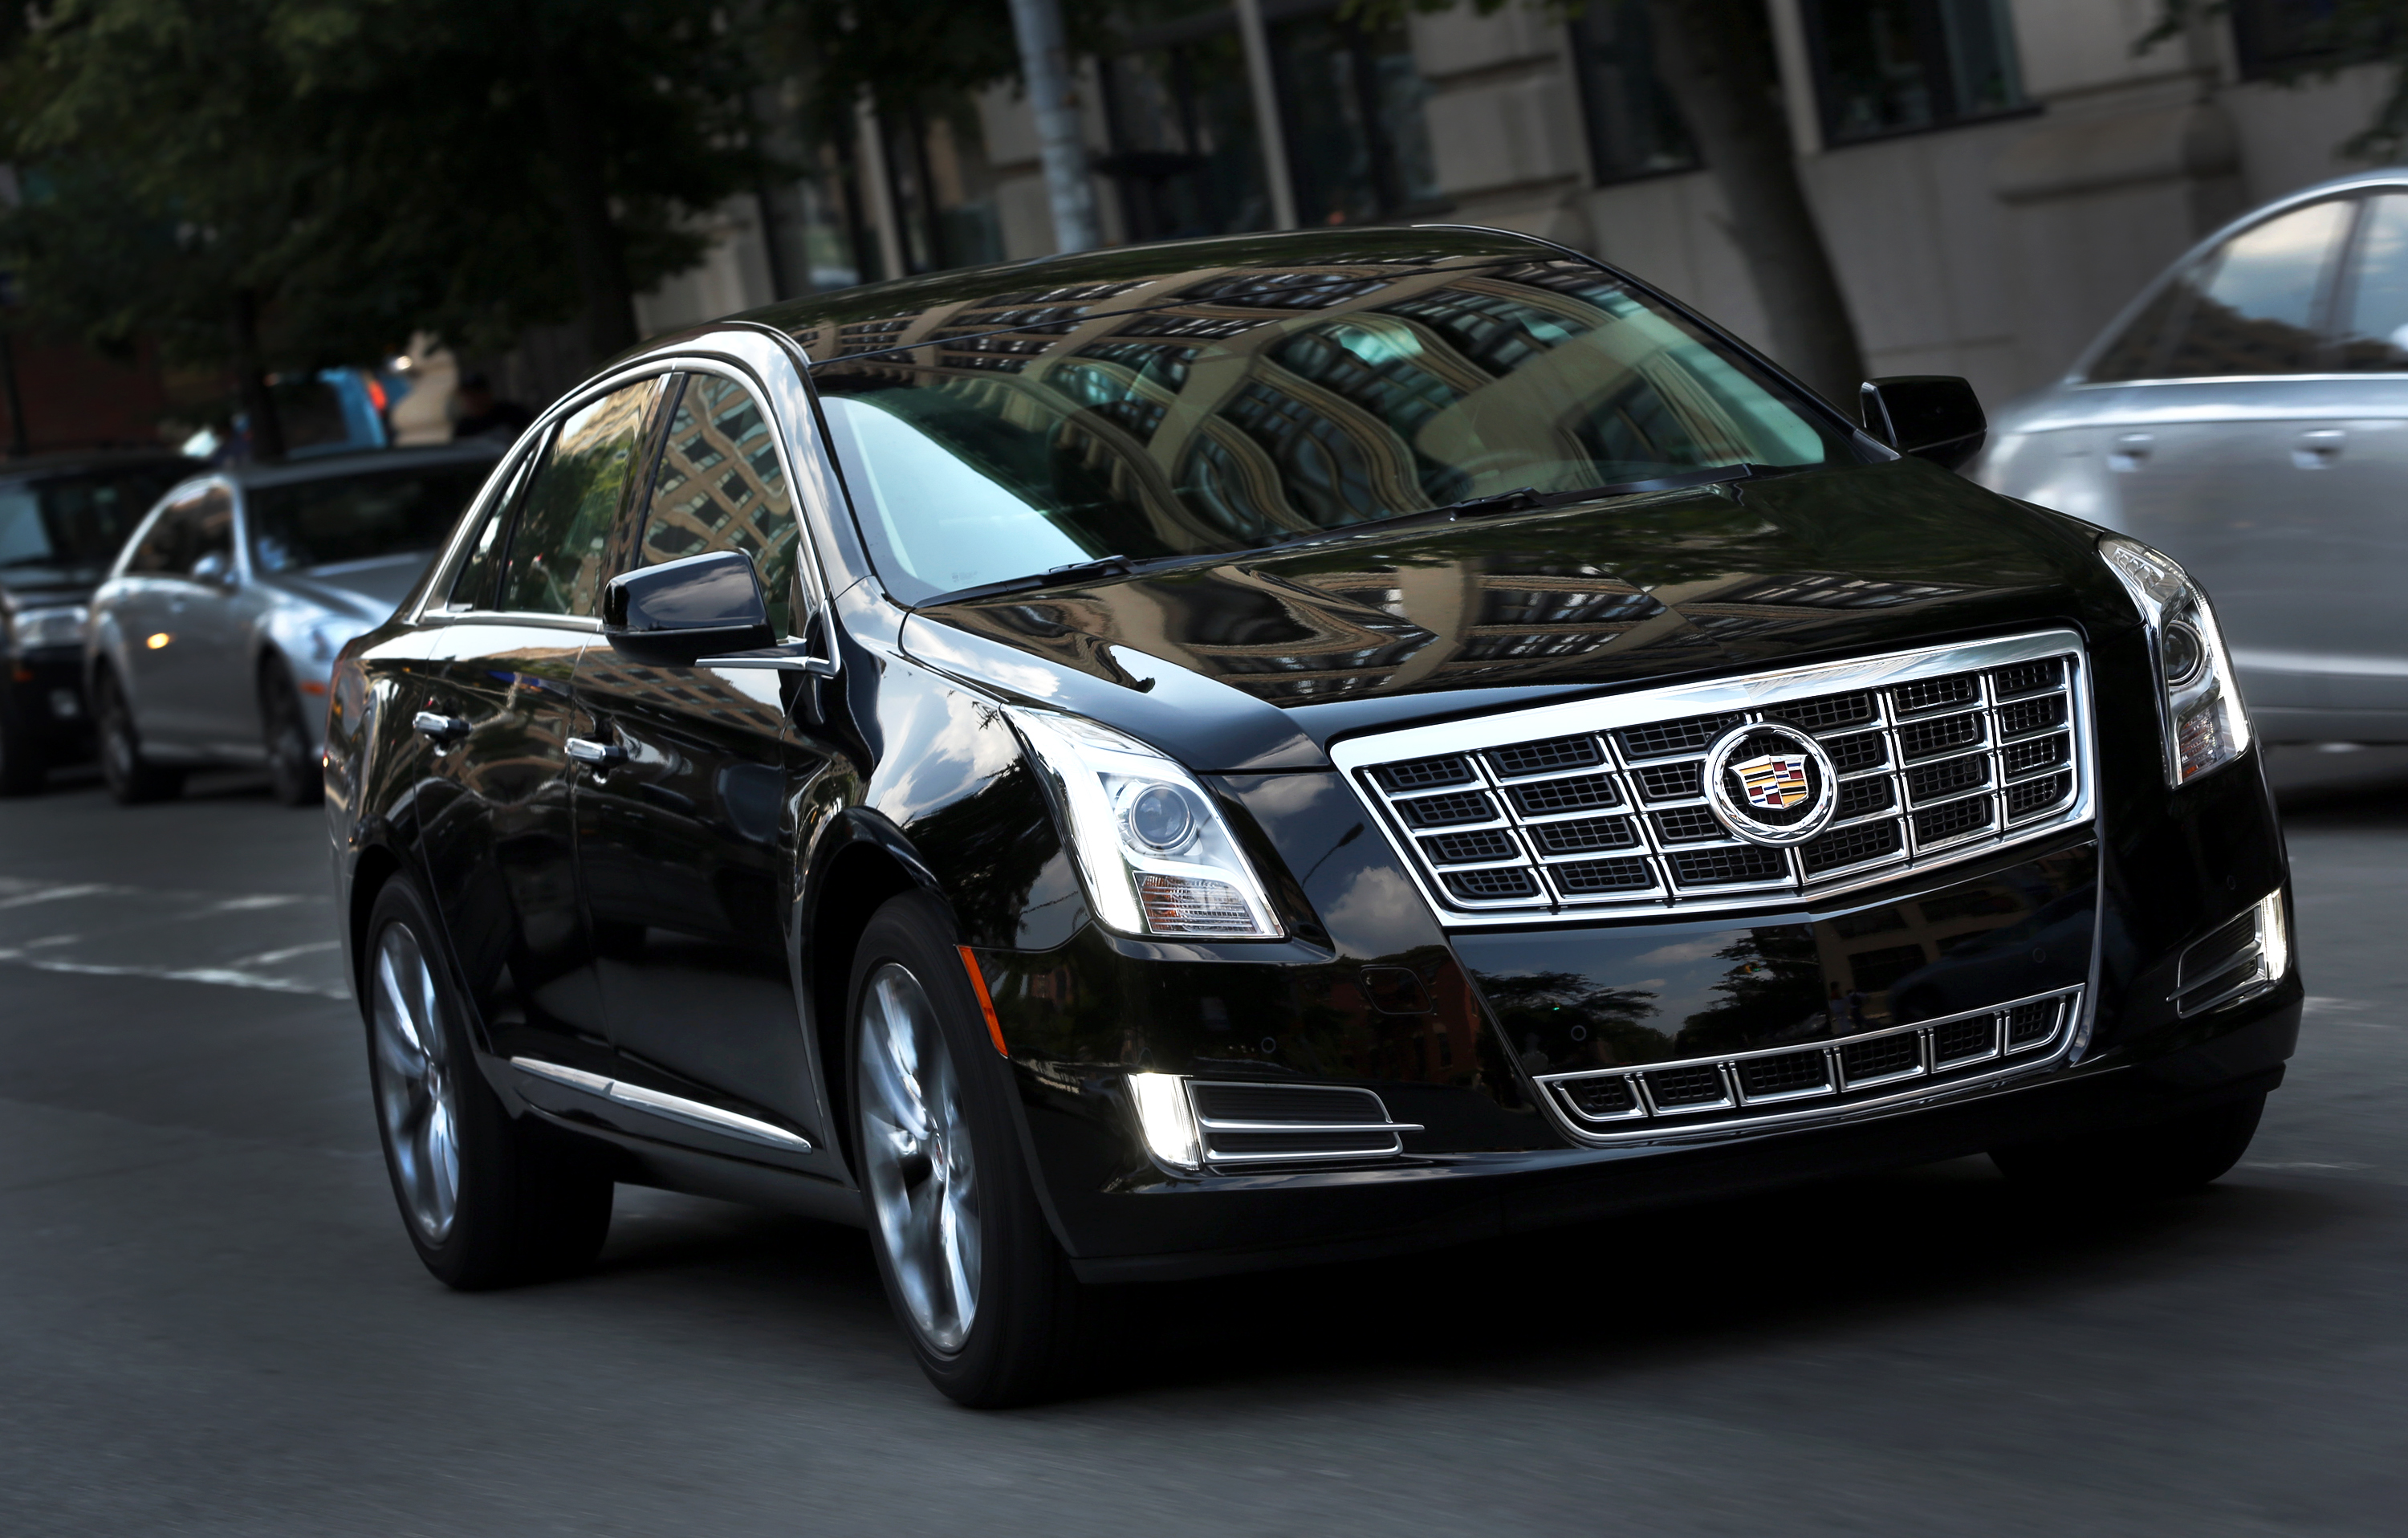 Cadillac Xts Brings Its Best To Livery Industry